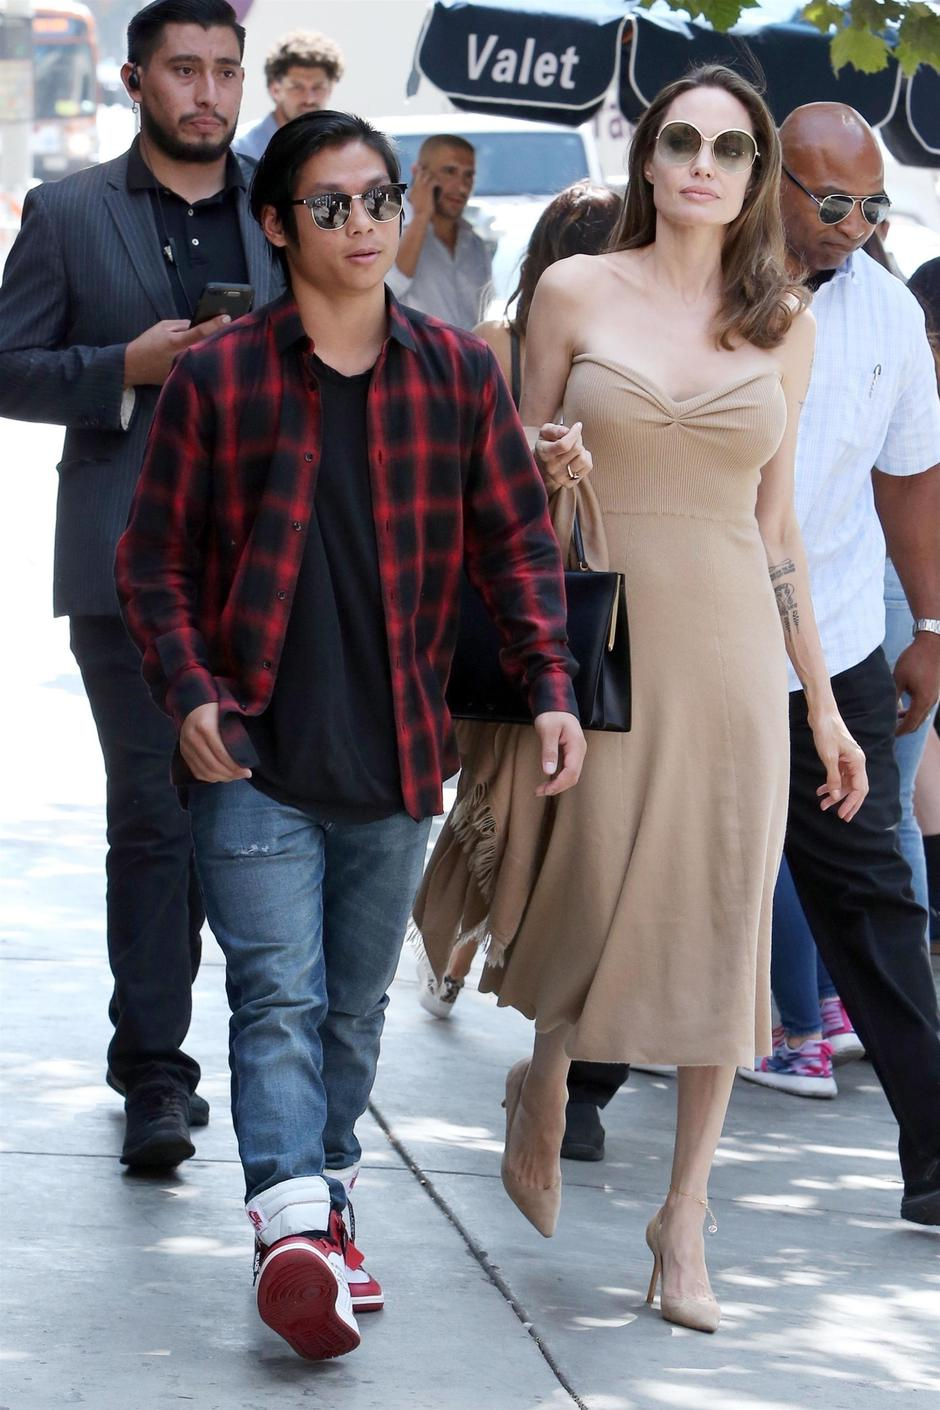 *EXCLUSIVE* Angelina Jolie and her son Pax grab lunch at Perch restaurant in Los Angeles | Autor: JAPZ, ENAV, JOGA